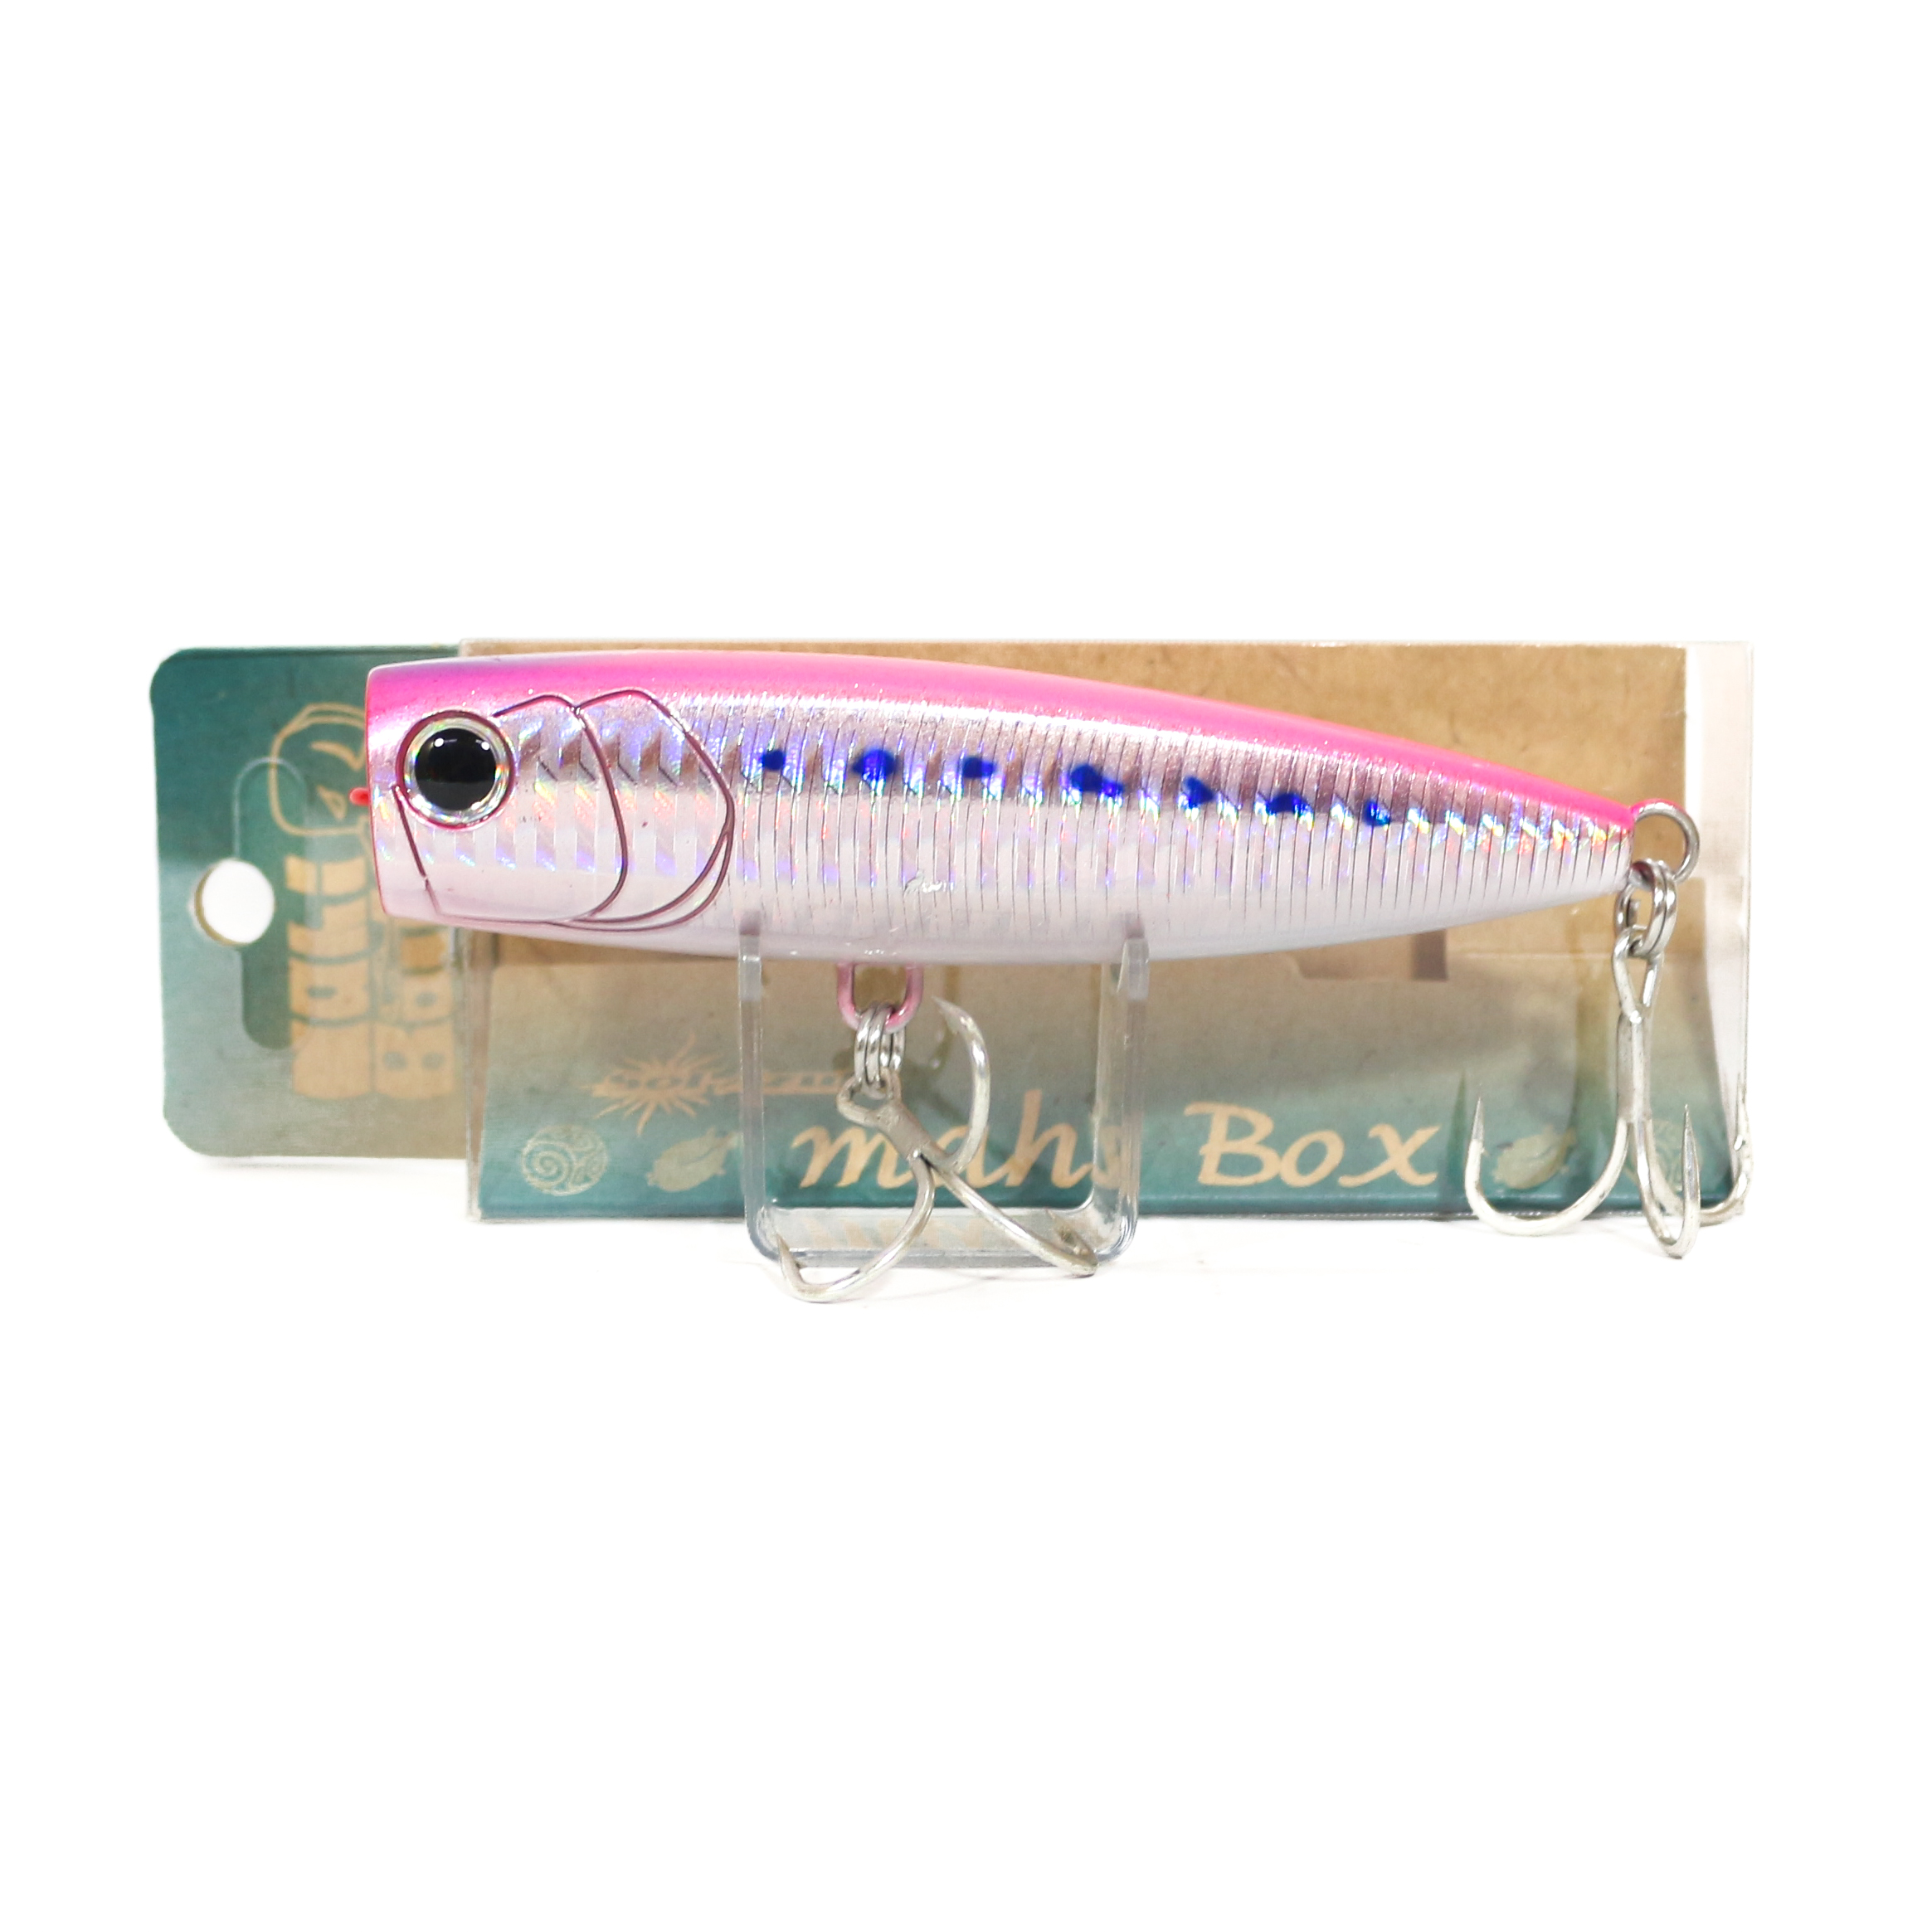 Mangrove Studio Mahi Box Popper 100 mm 28 grams Floating Lure BH-7M (1492)